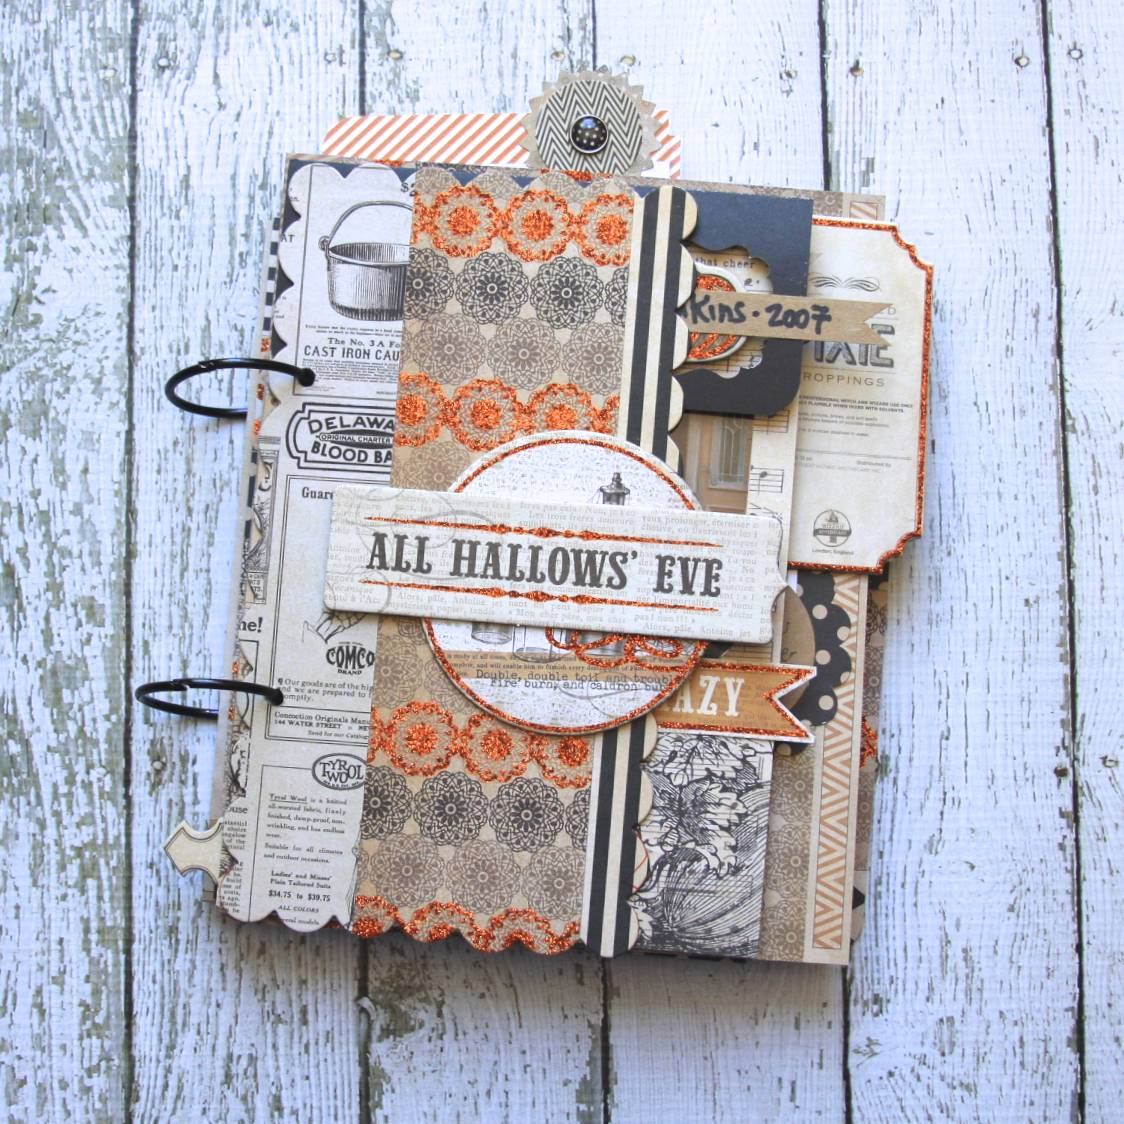 Halloween Mini Album | iloveitallwithmonikawright.com